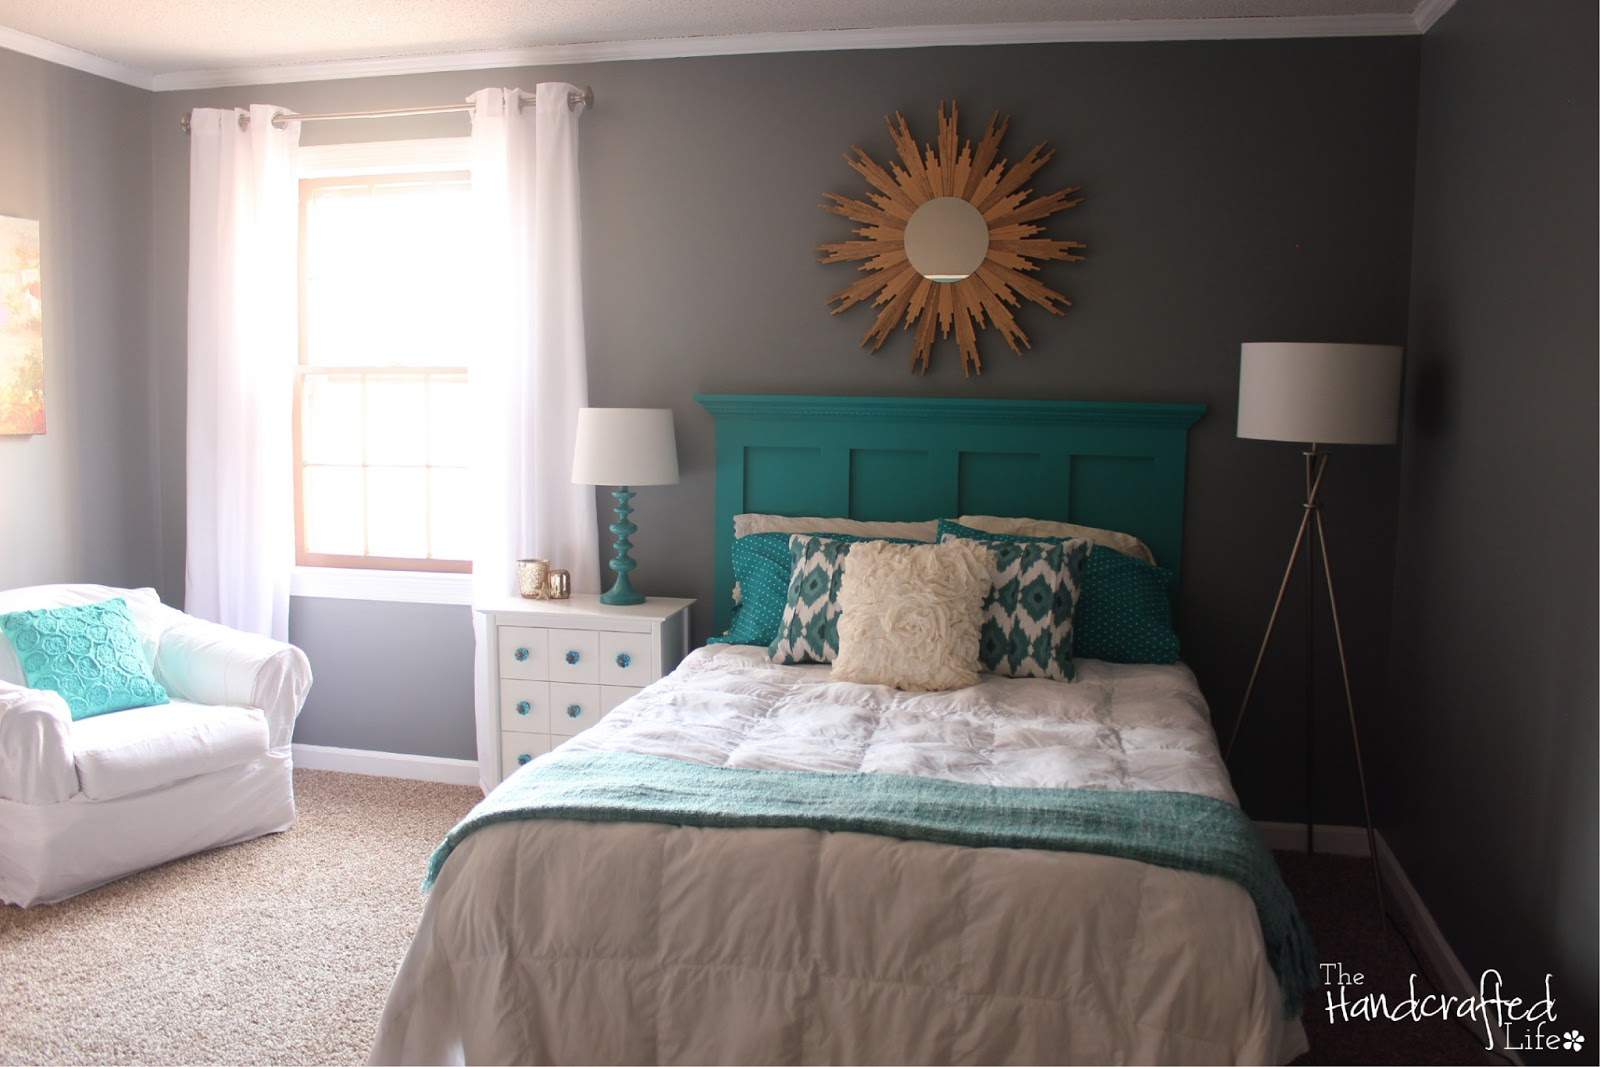 The Handcrafted Life Teal White and Grey Guest Bedroom Reveal